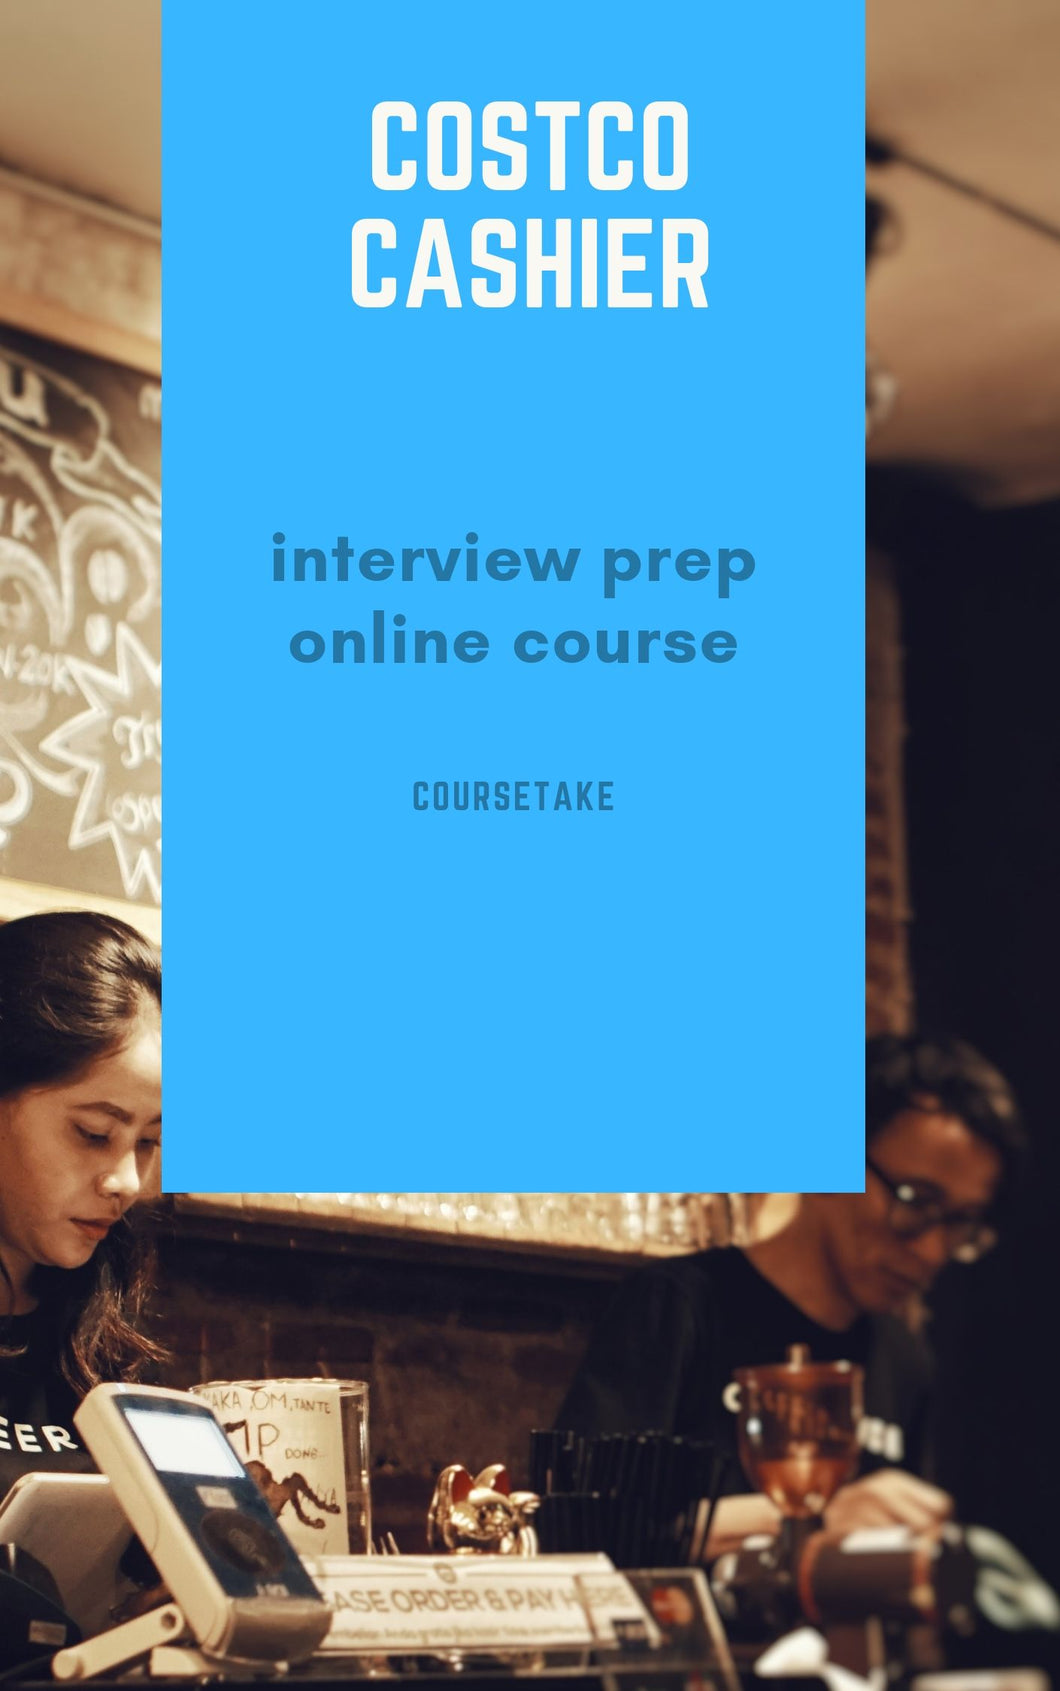 Costco Cashier Interview Preparation Online Course